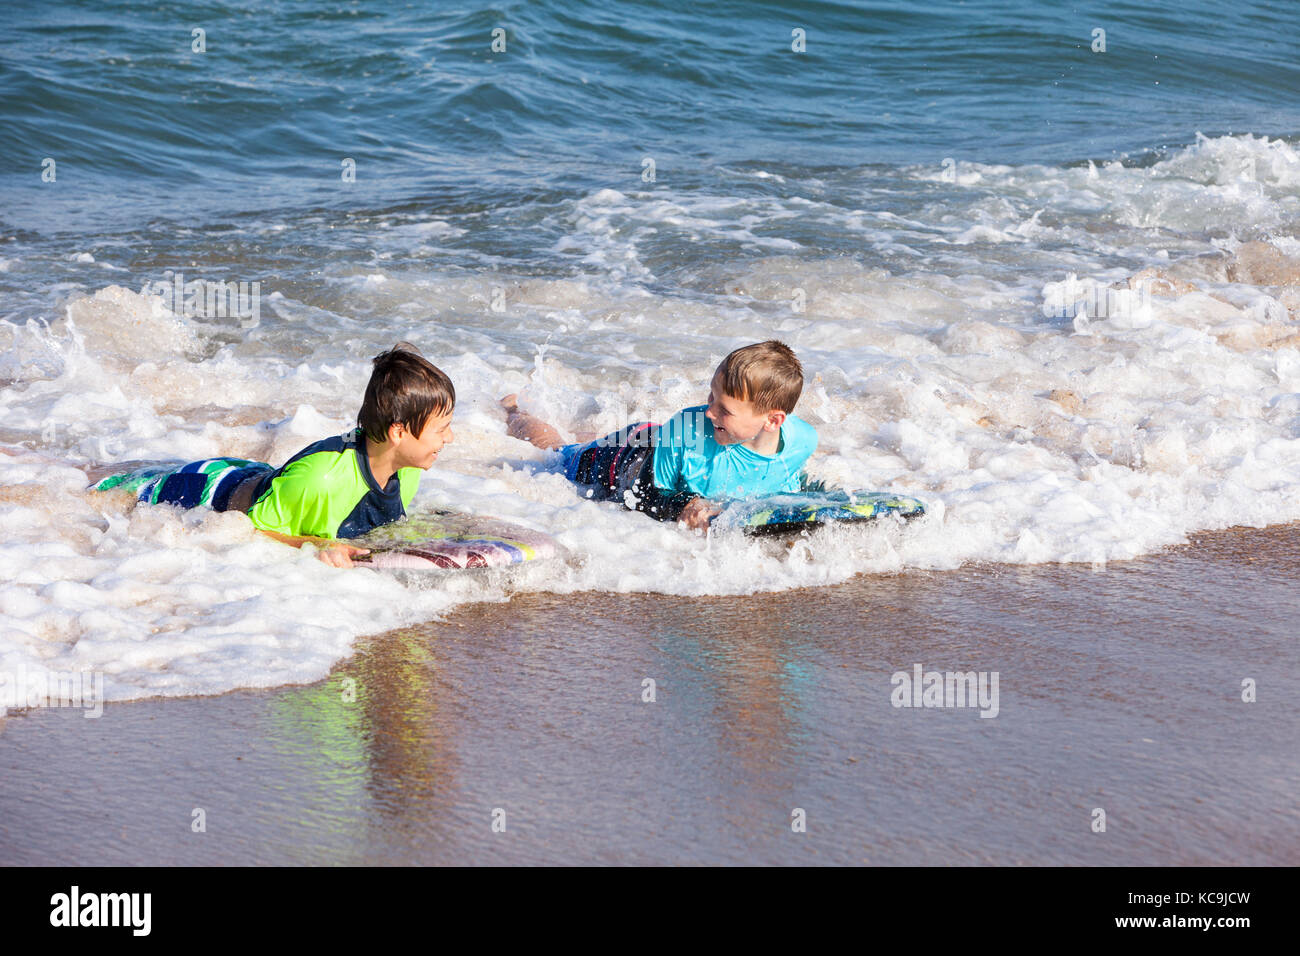 Avon, Outer Banks, North Carolina, USA.  Pre-teenage Boys in the Atlantic Surf with Boogie Boards. - Stock Image